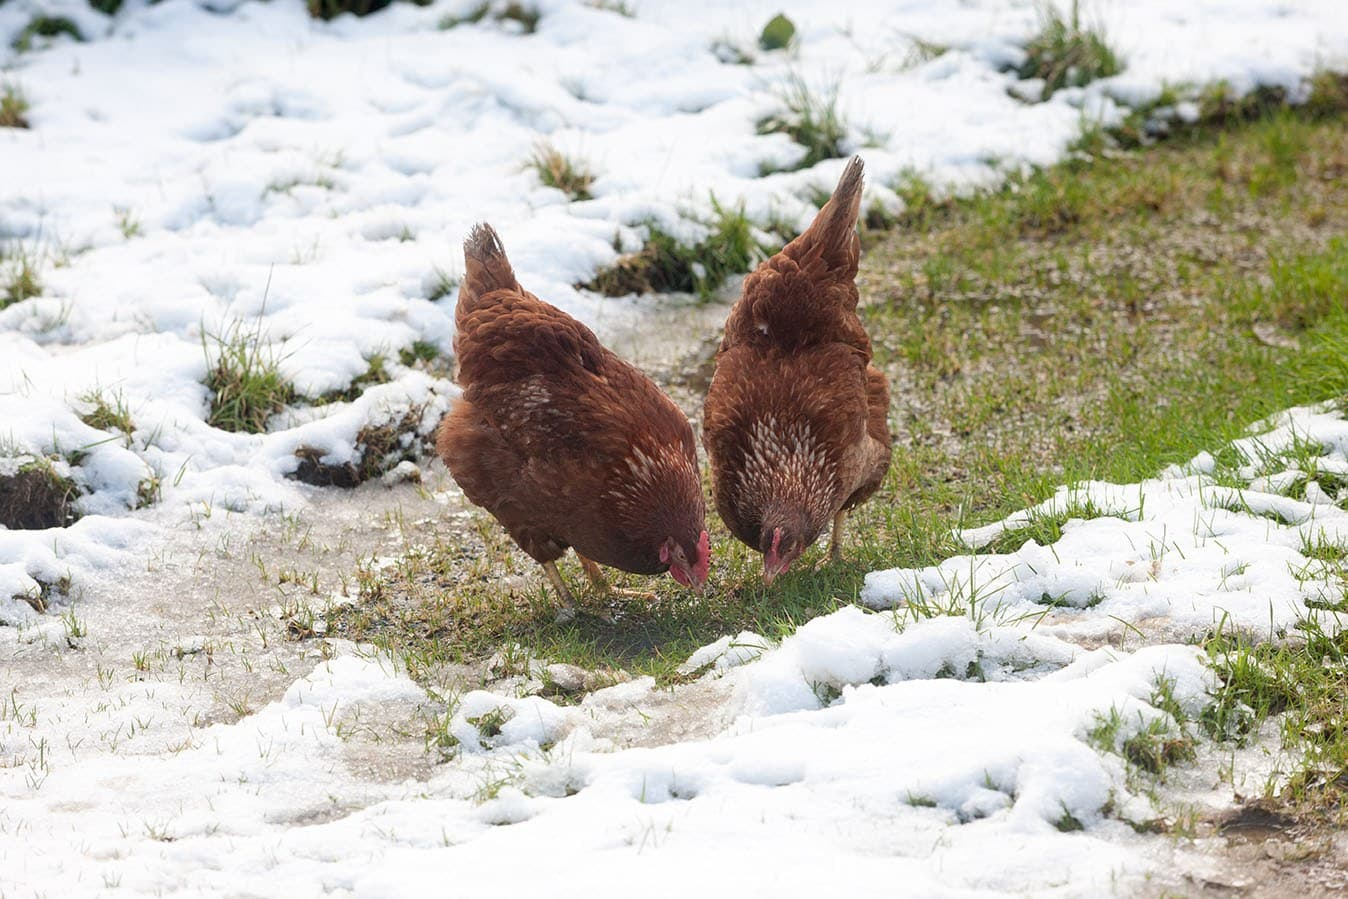 Rhode Island Red hens in the snow